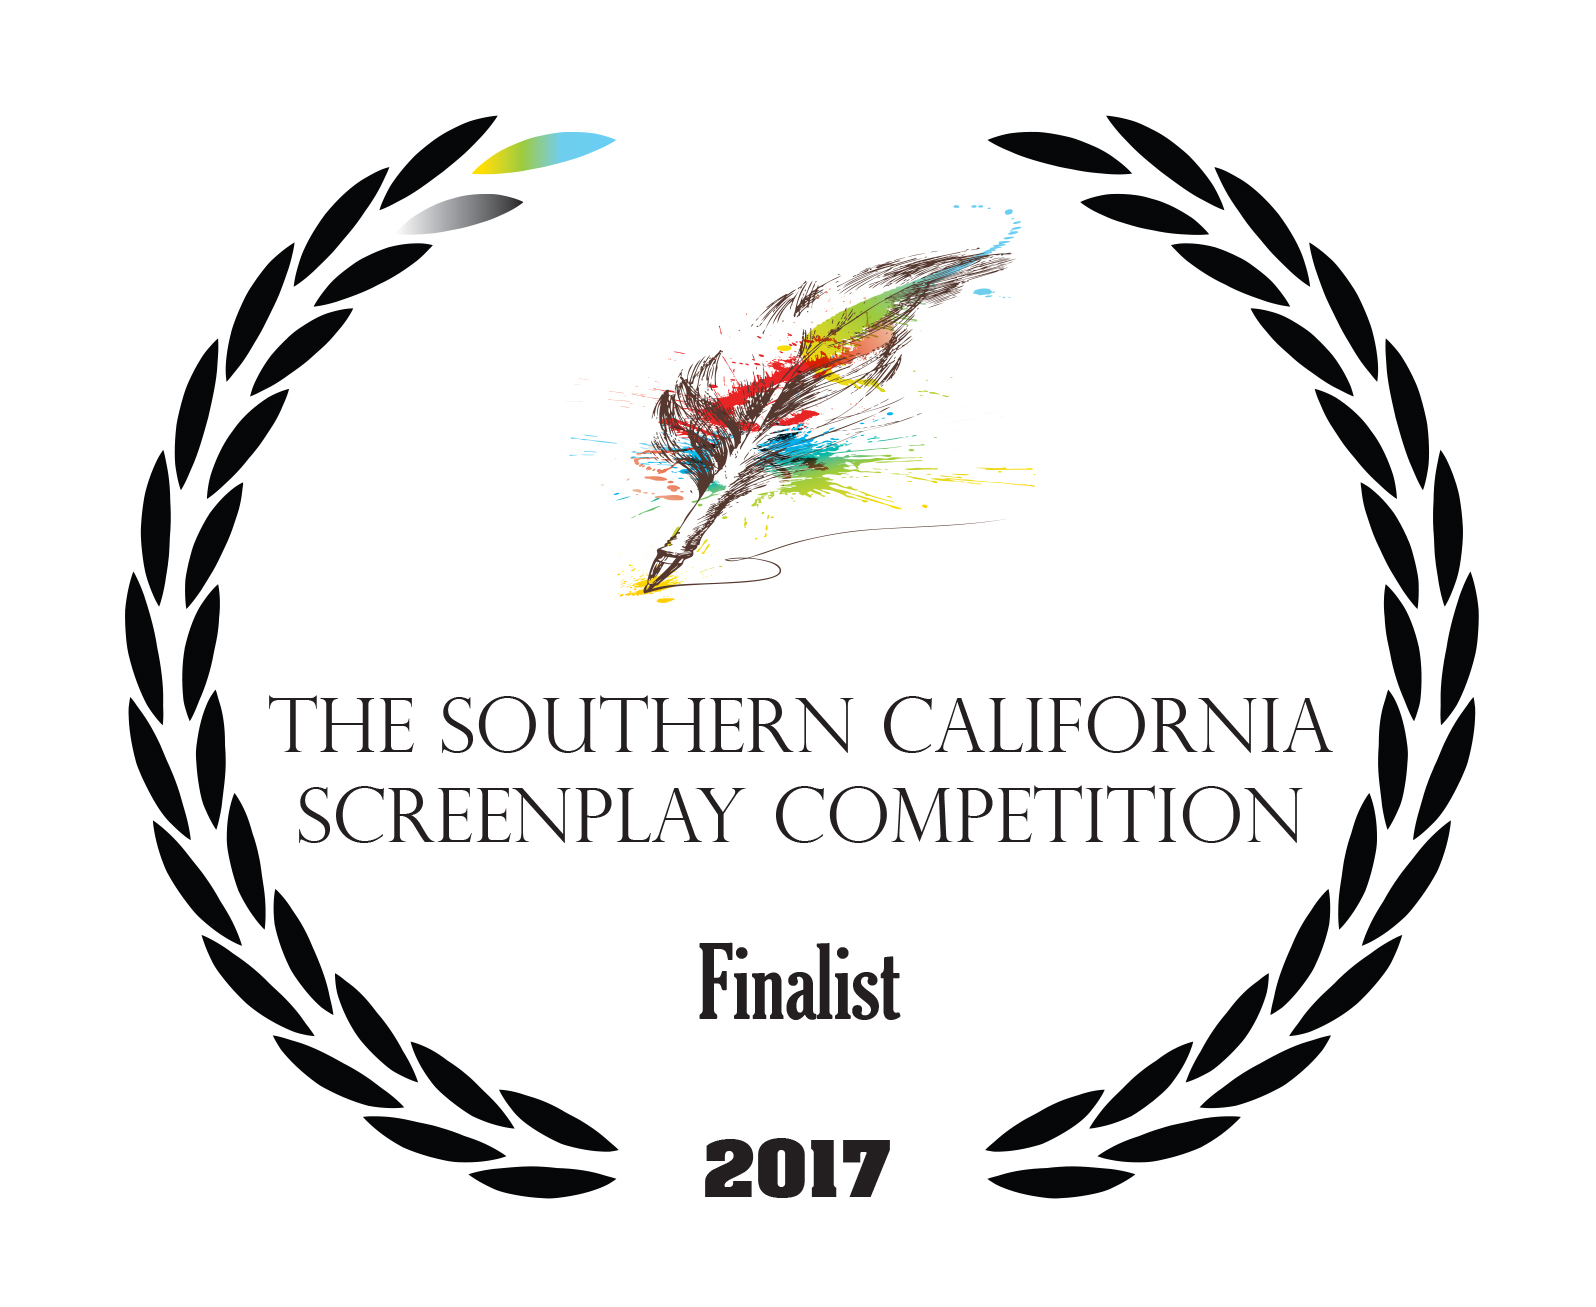 TheOddsSemi-FinalistTheSouthernCaliforniaScreenplayCompetition